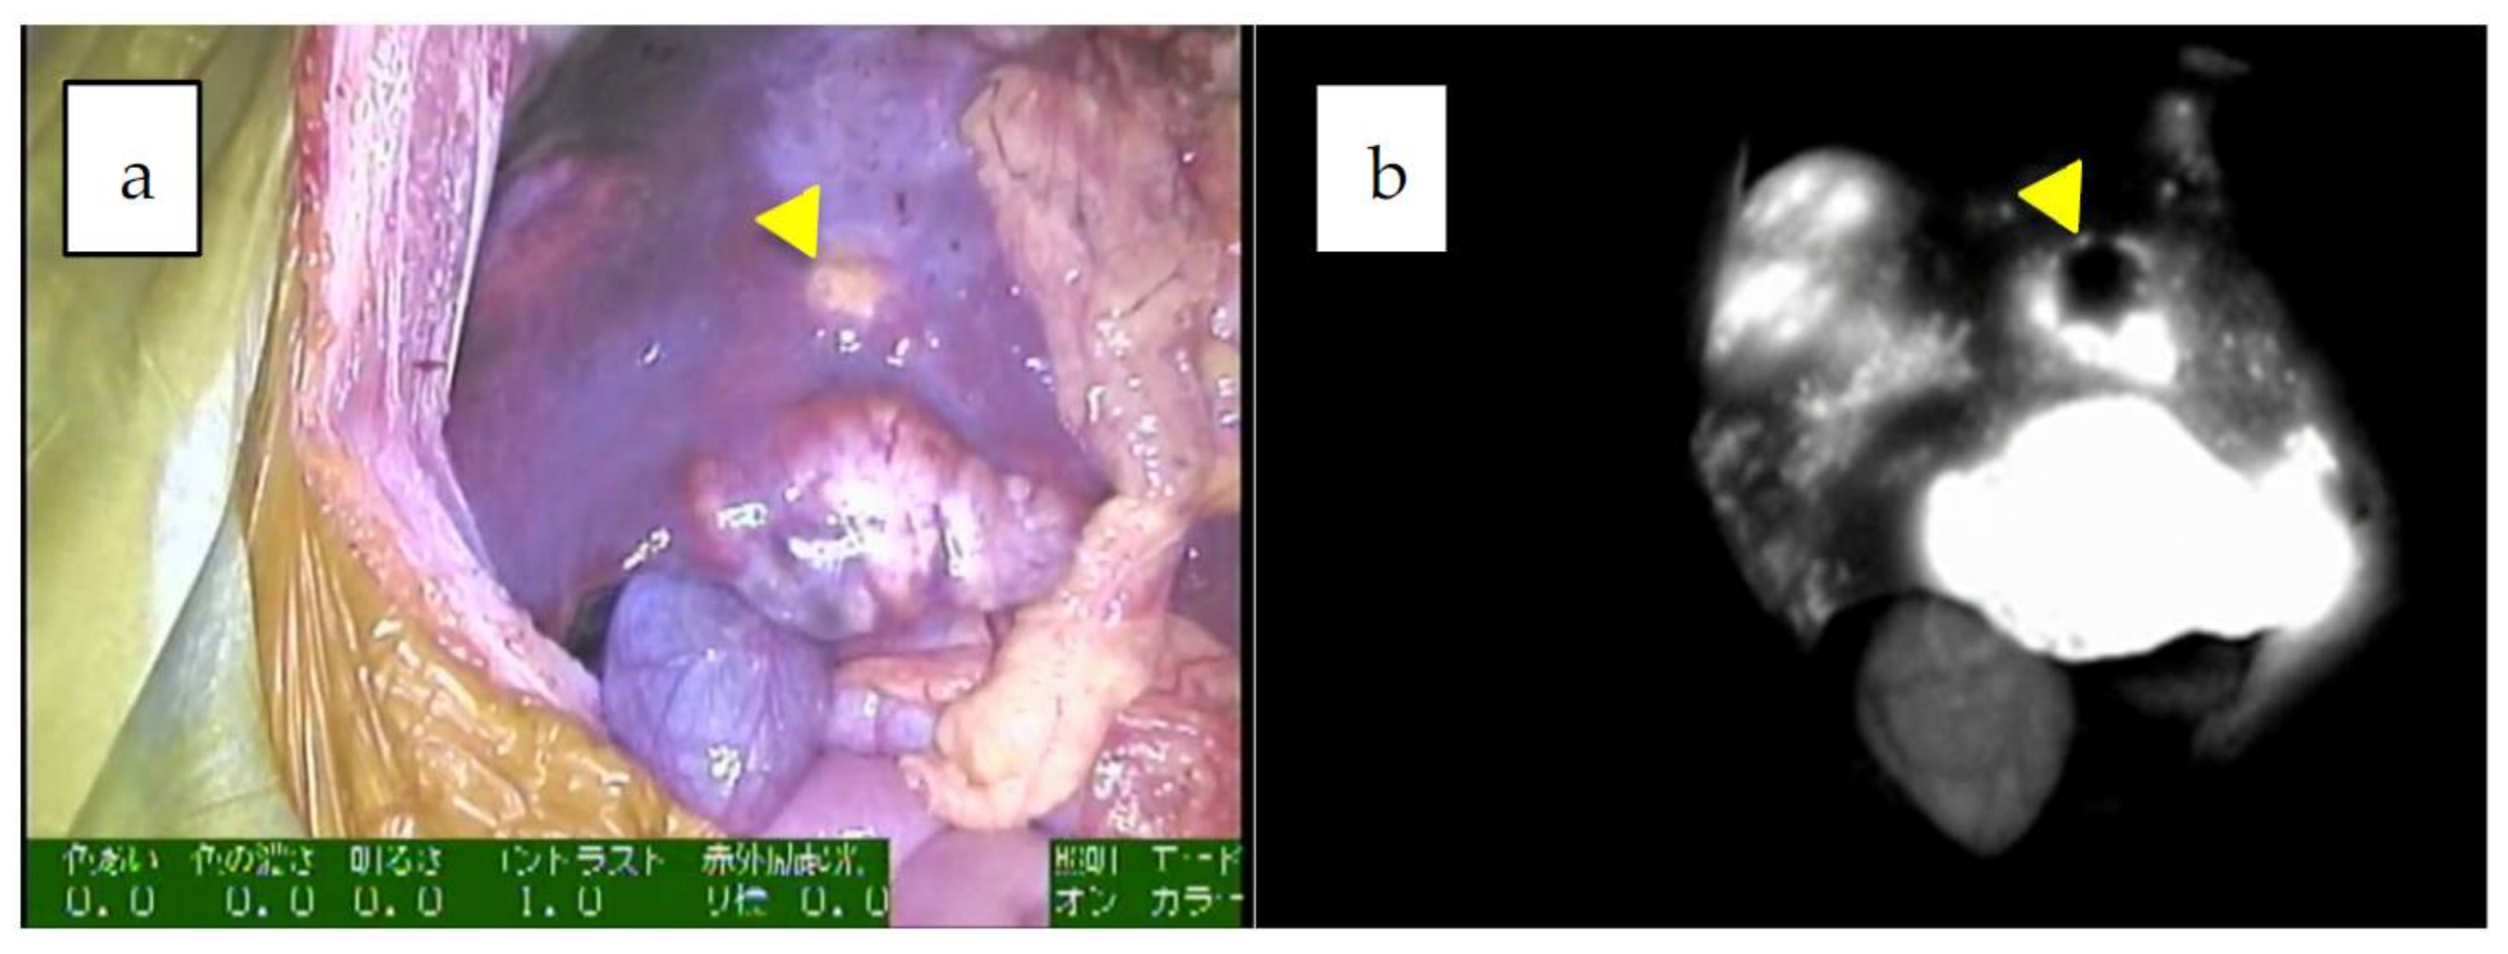 Cancers   Free Full-Text   Fluorescence-Guided Surgery for Hepatoblastoma  with Indocyanine Green   HTML